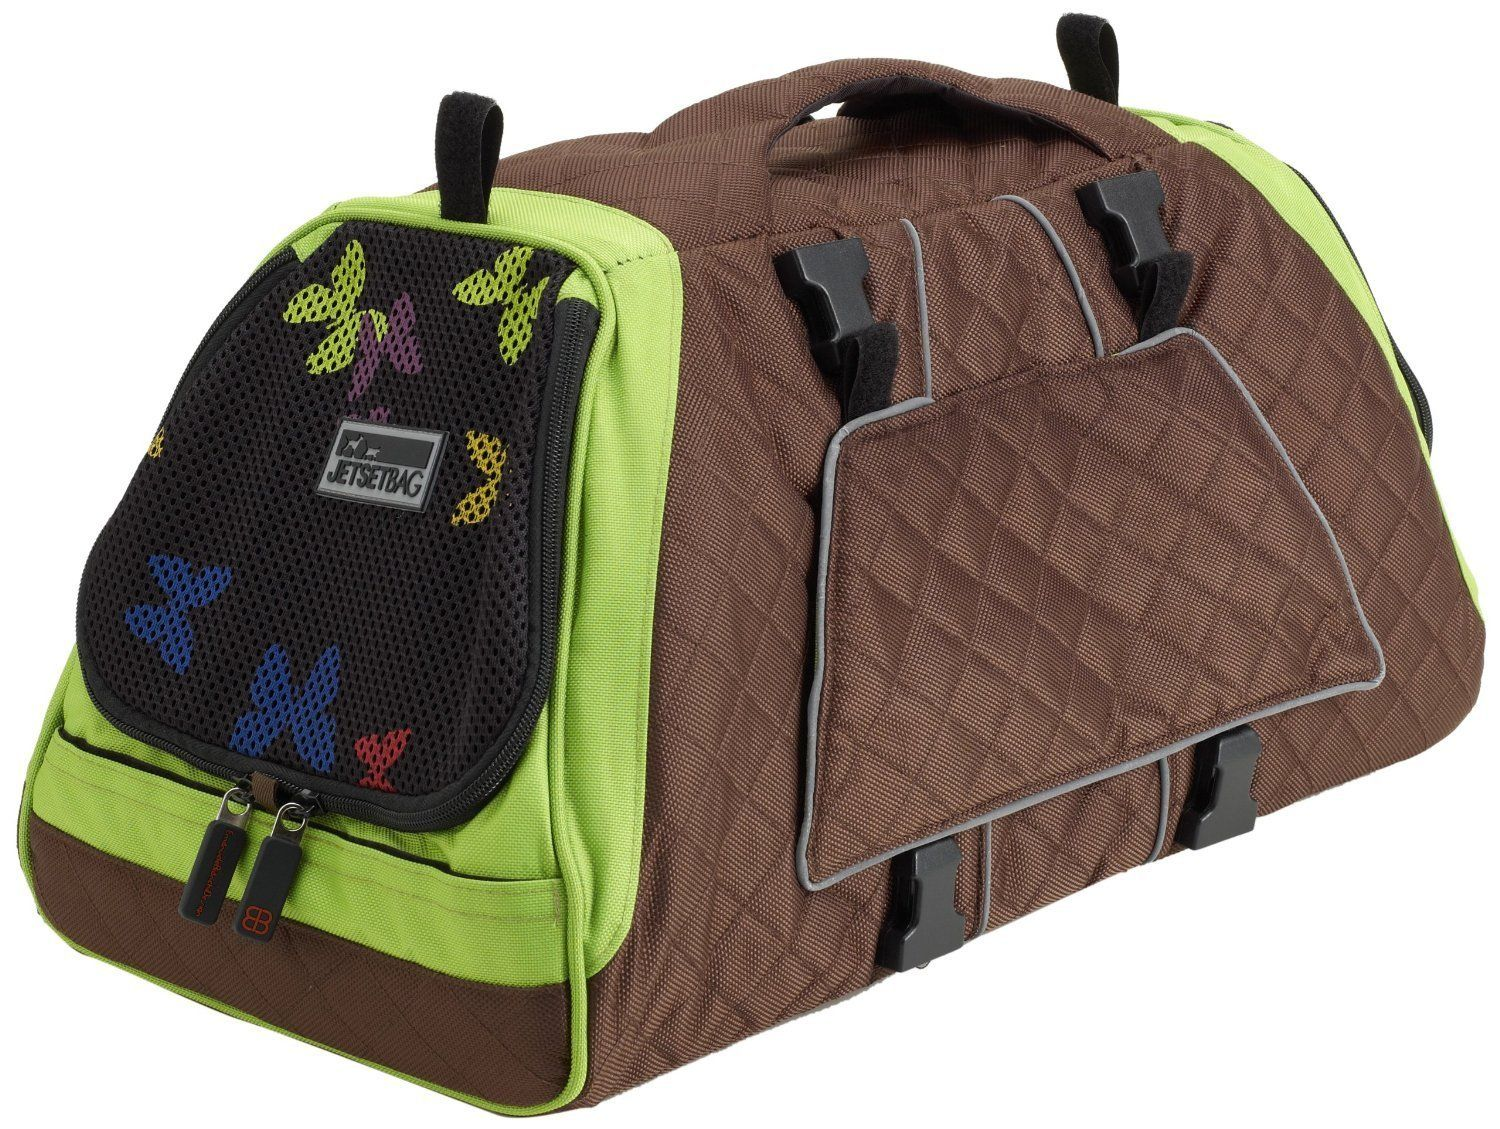 Petego Jet Set Pet Carrier with Forma Frame ** Want to